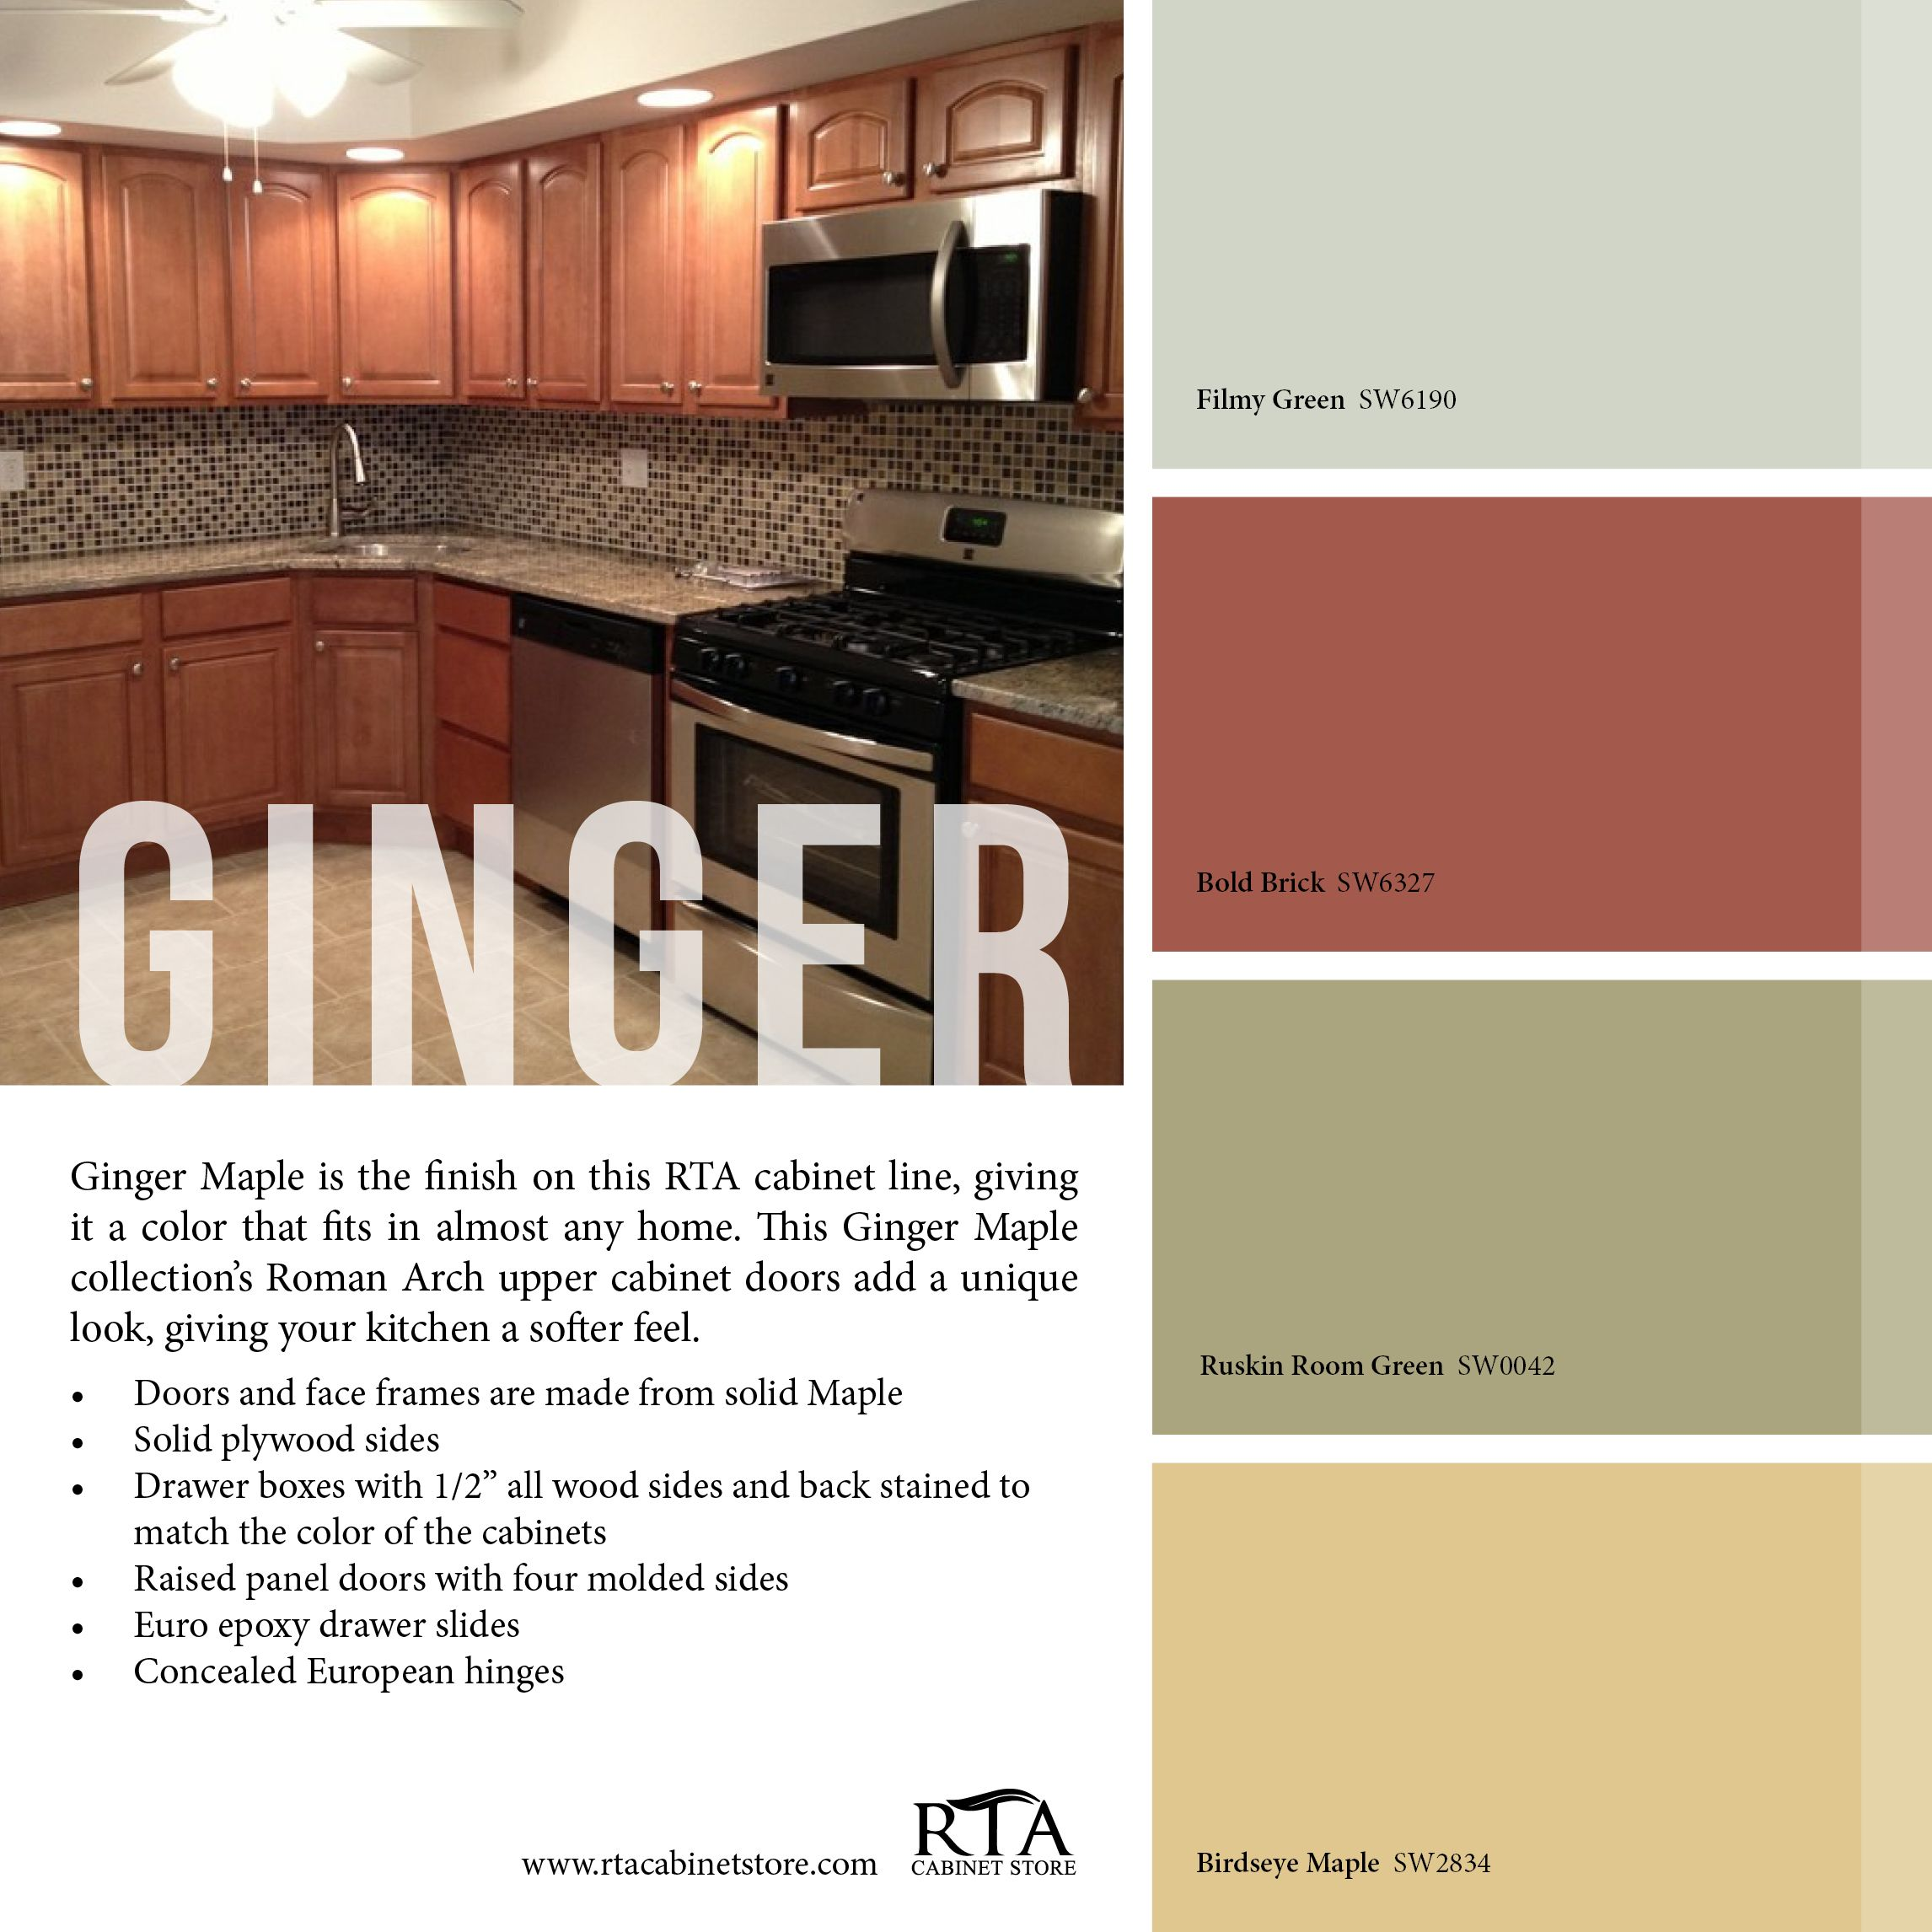 Pin By Carolynne Mielke On Color Palettes Maple Kitchen Cabinets Tuscan Kitchen Tuscan Colors